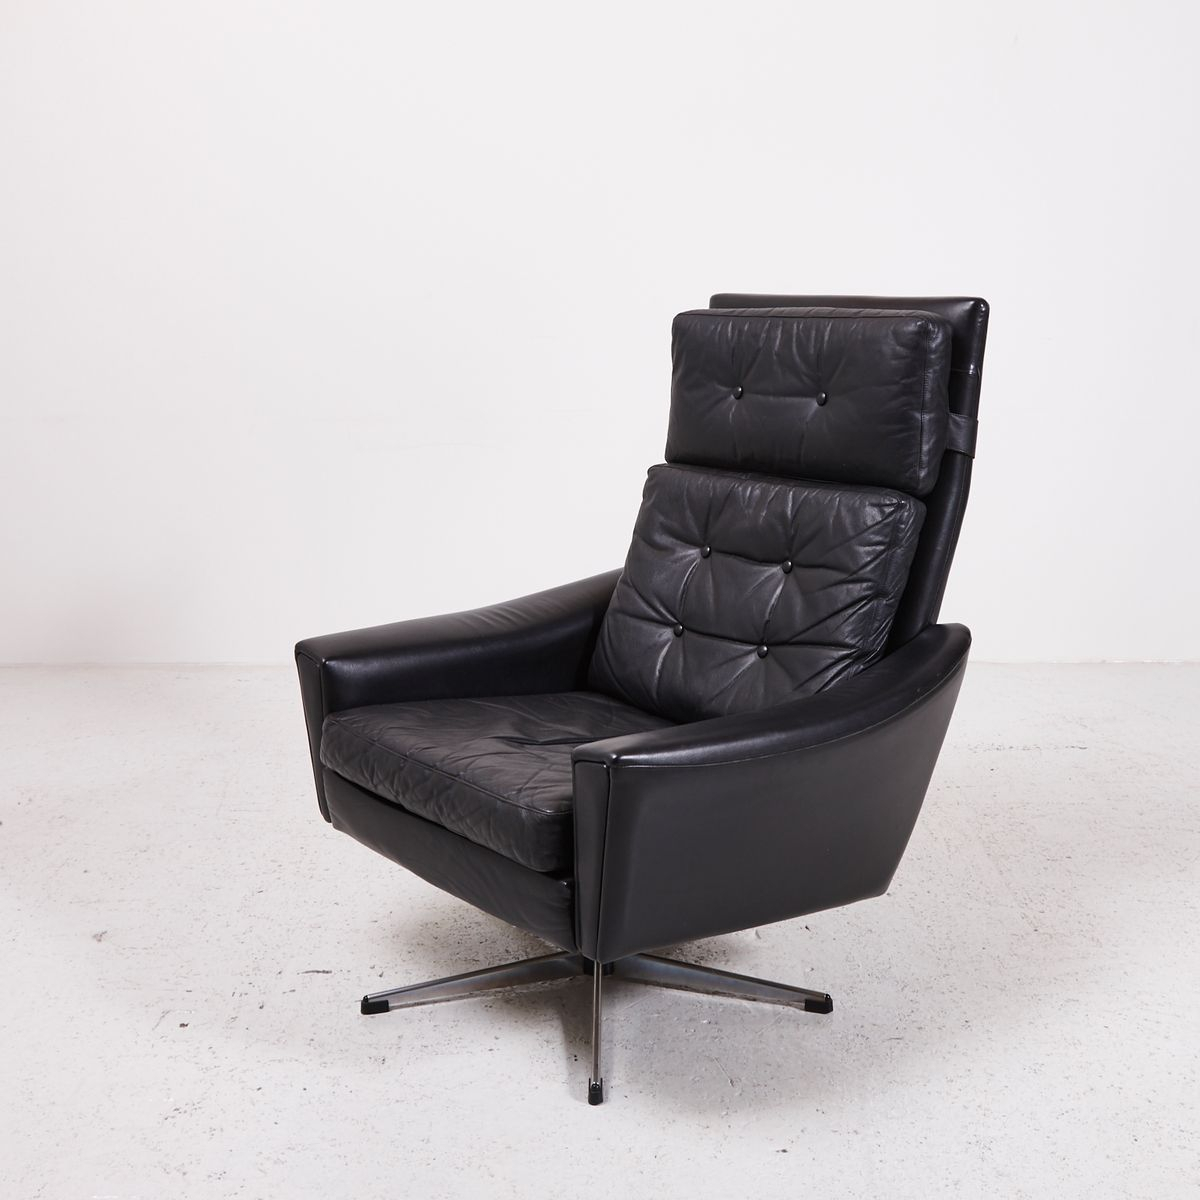 Black Leather Swivel Chair With Star Shaped Stand, 1970S For Sale At With Regard To Leather Black Swivel Chairs (View 16 of 25)